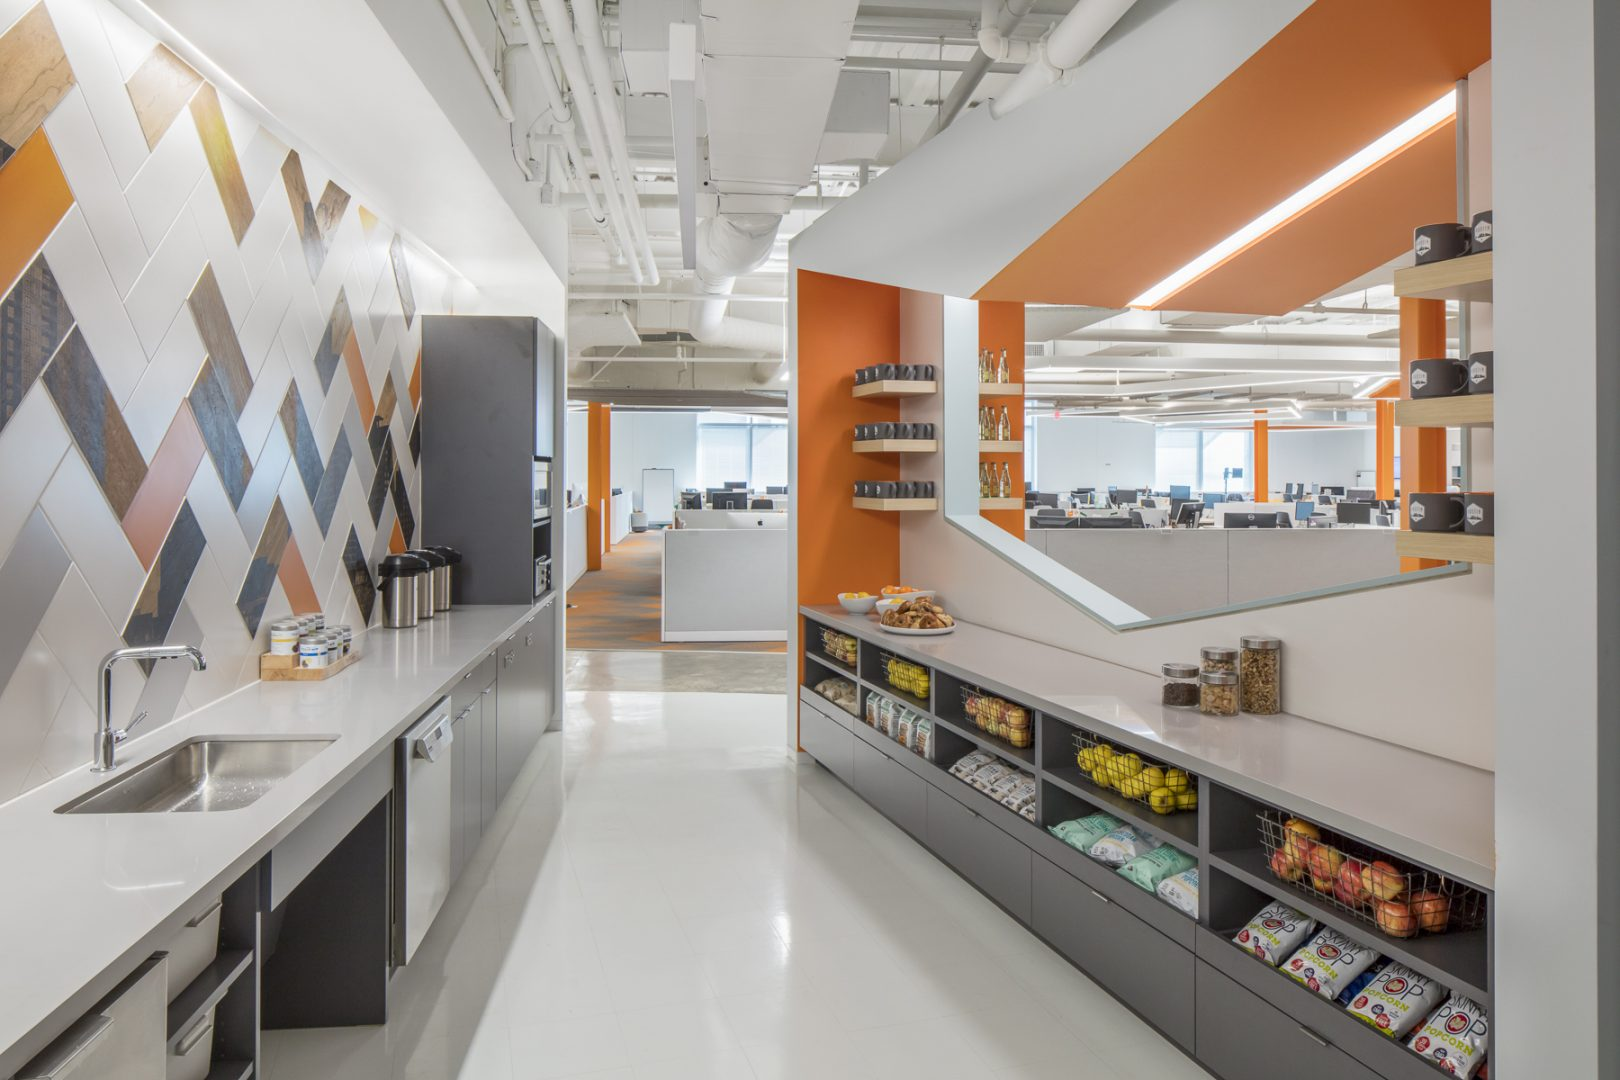 Corporate Technology Interior Design Magento Austin Breakroom Healthy Snack Bar